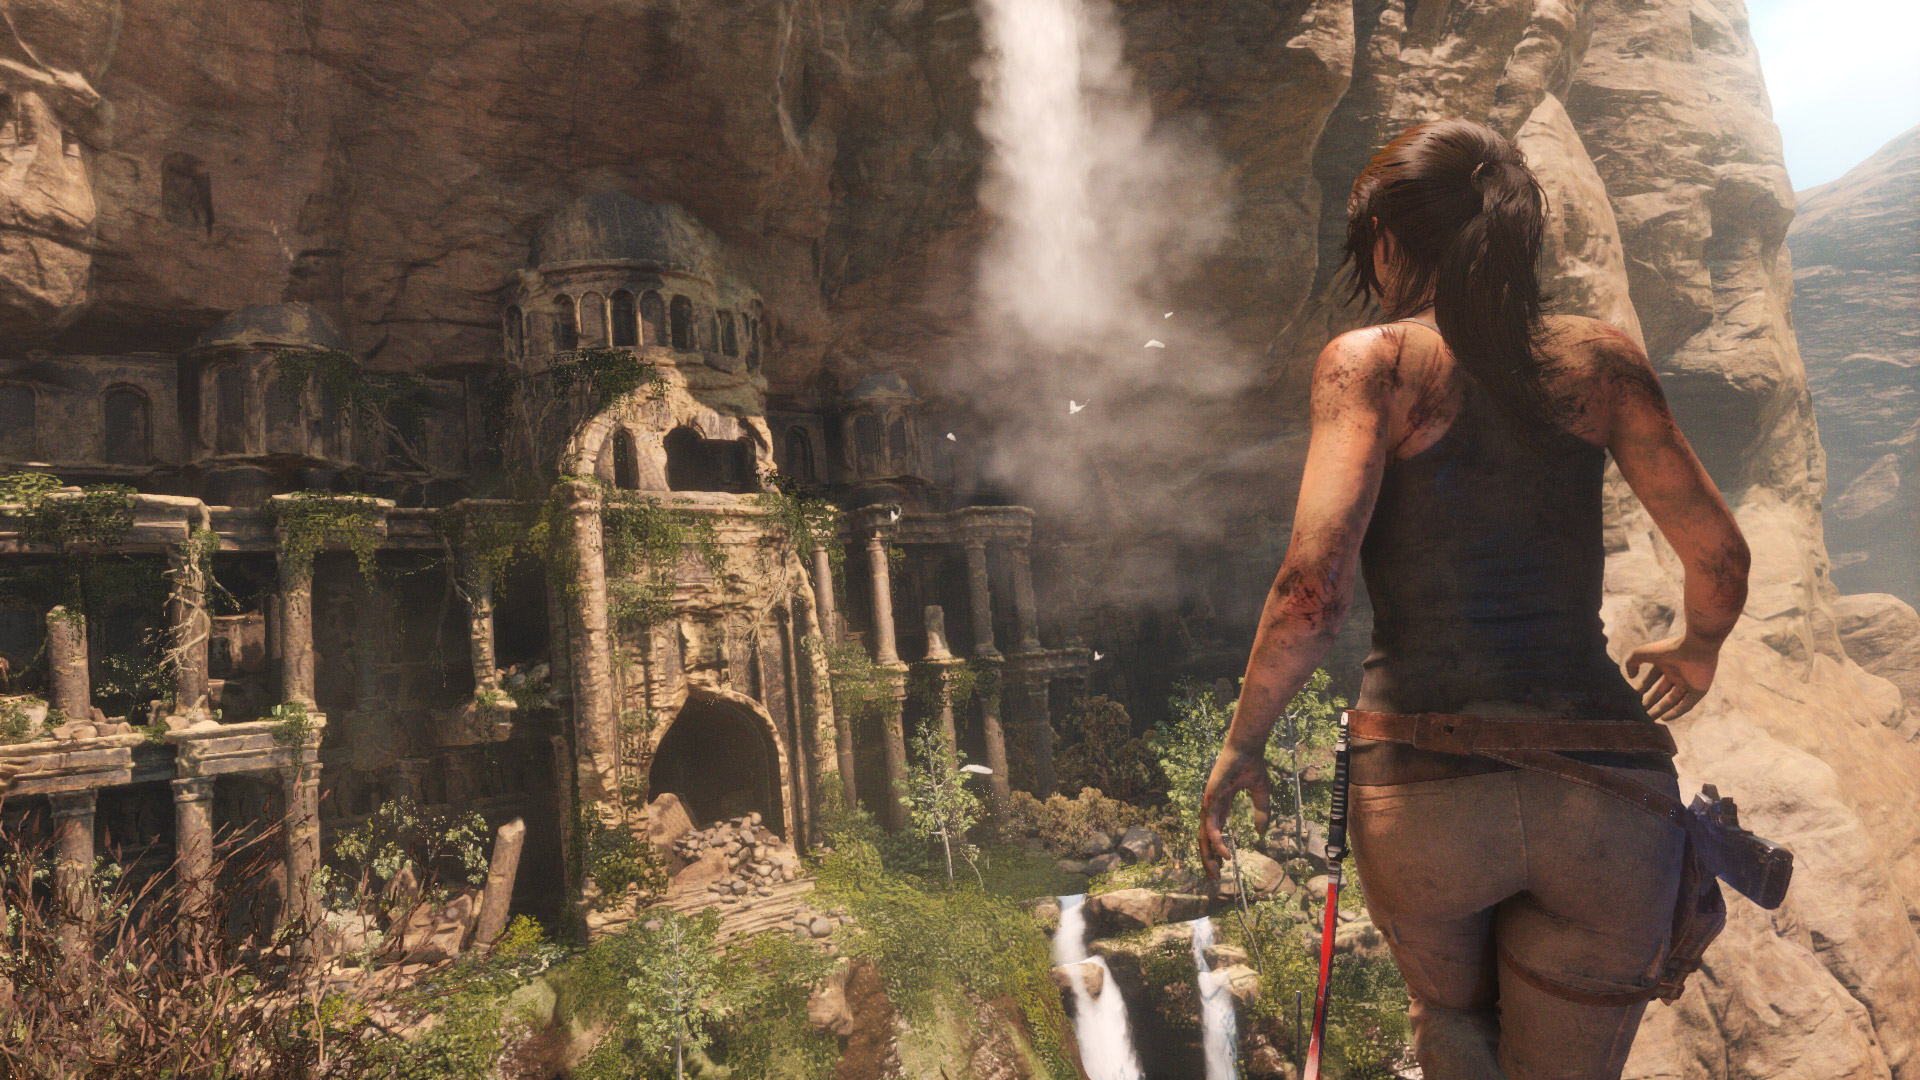 Rise of the Tomb Raider shown at E3 2015